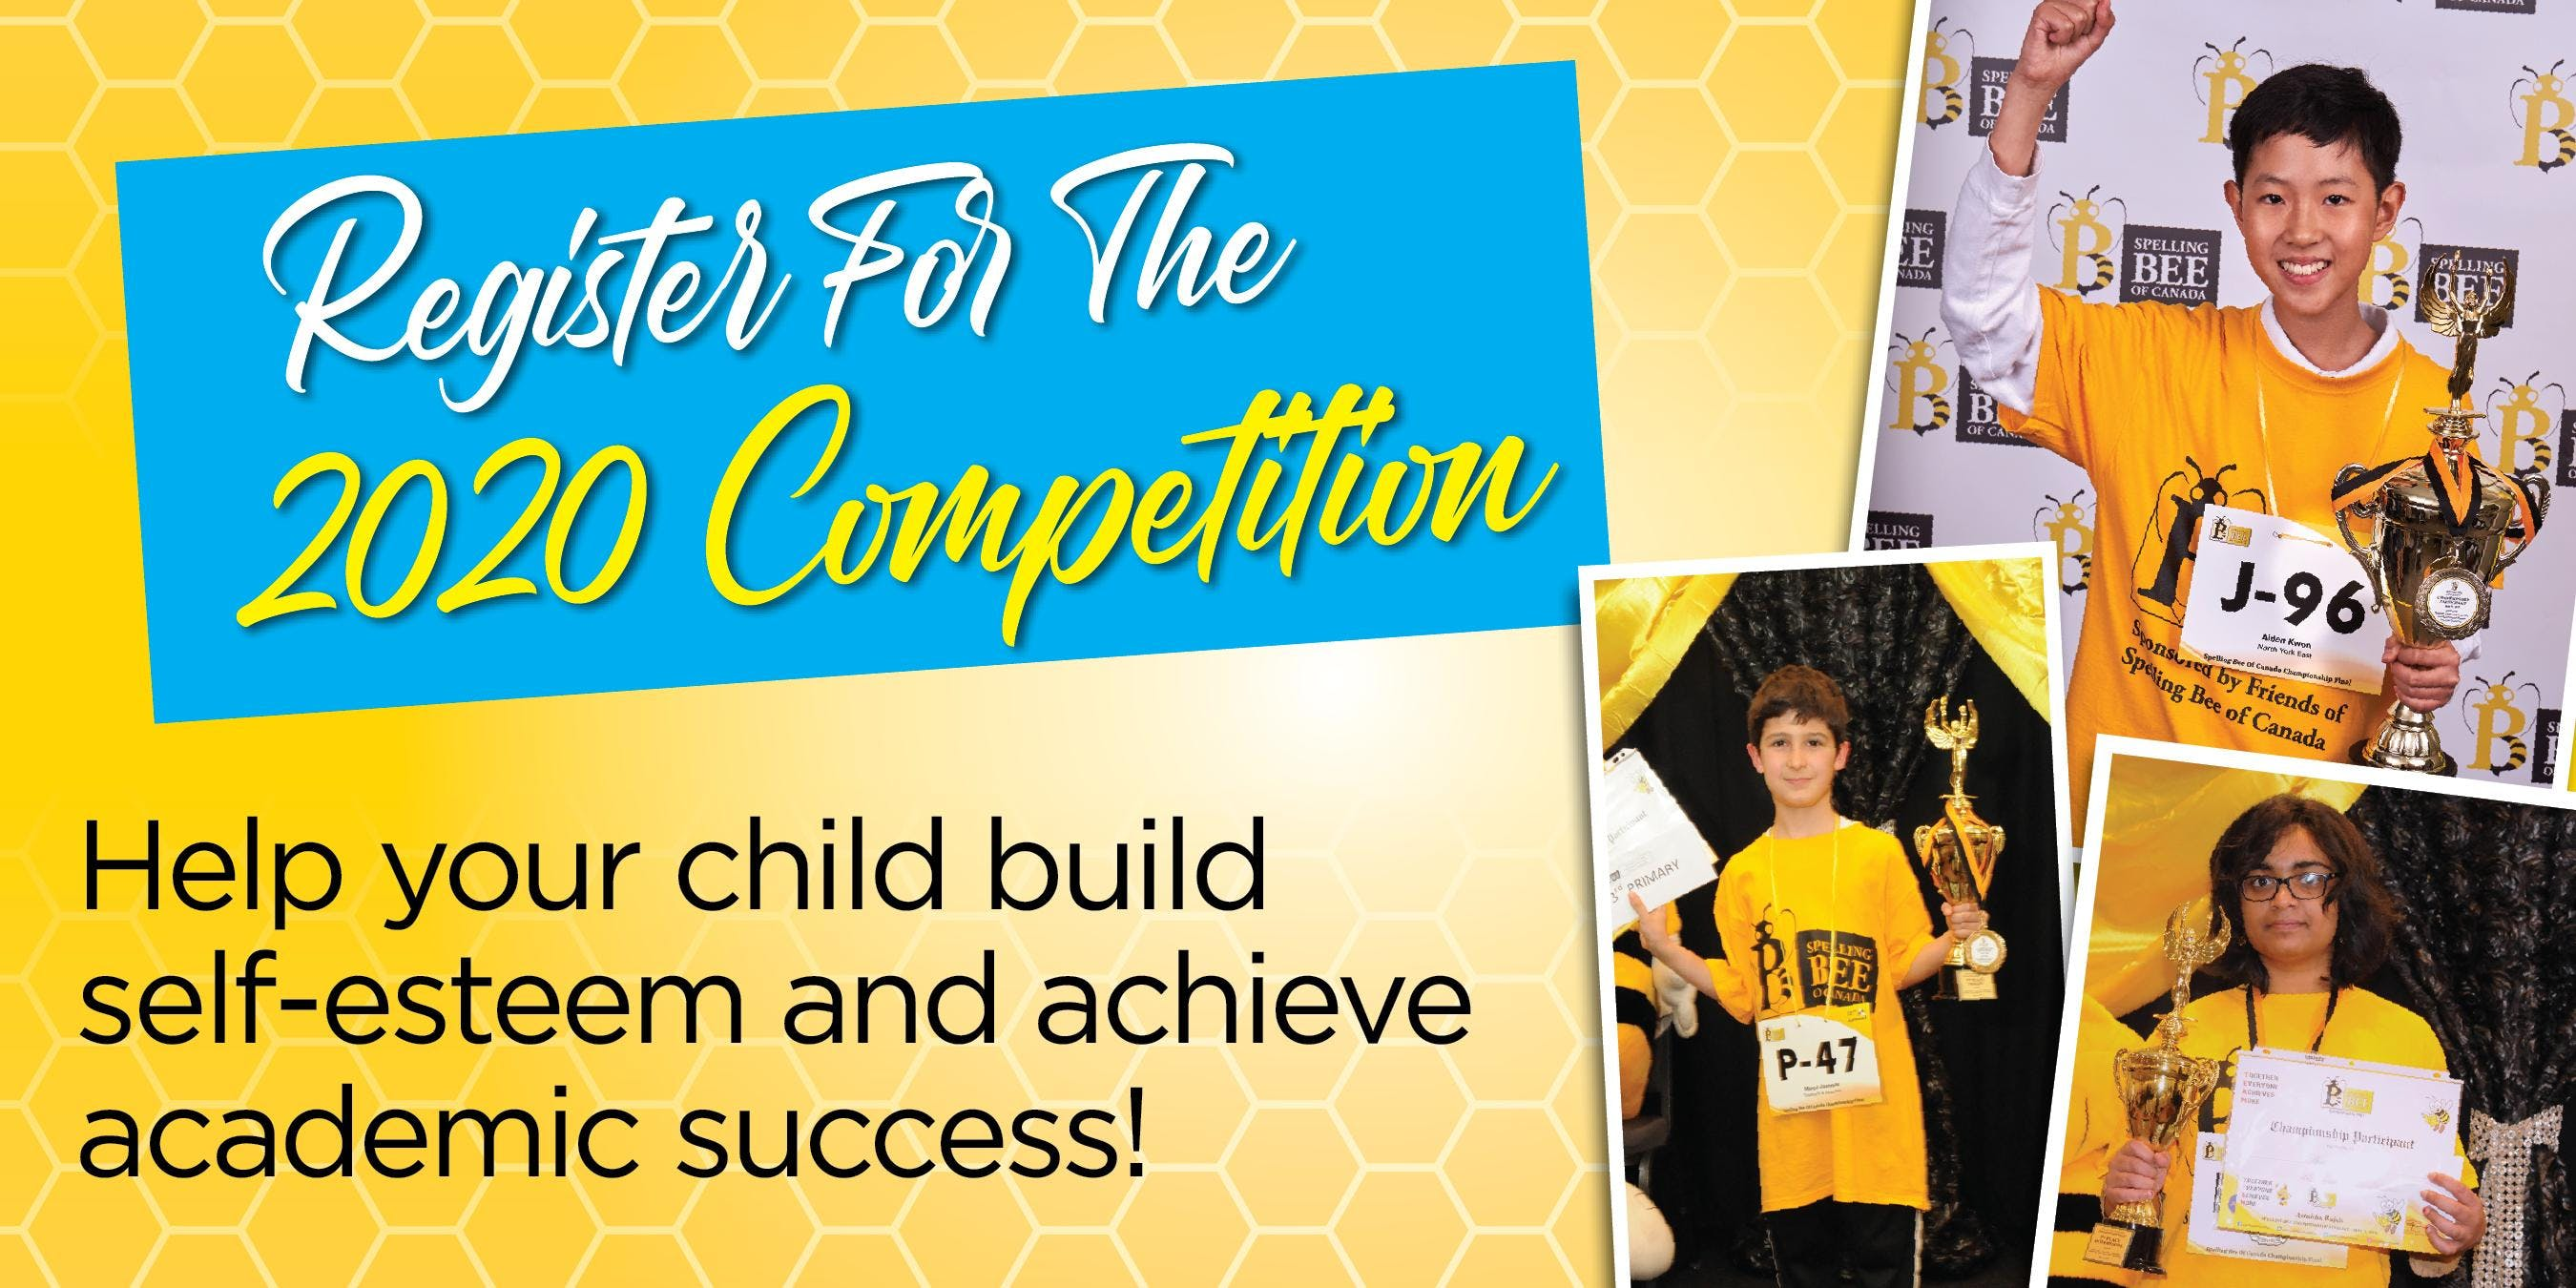 33rd Annual Spelling Bee Registration